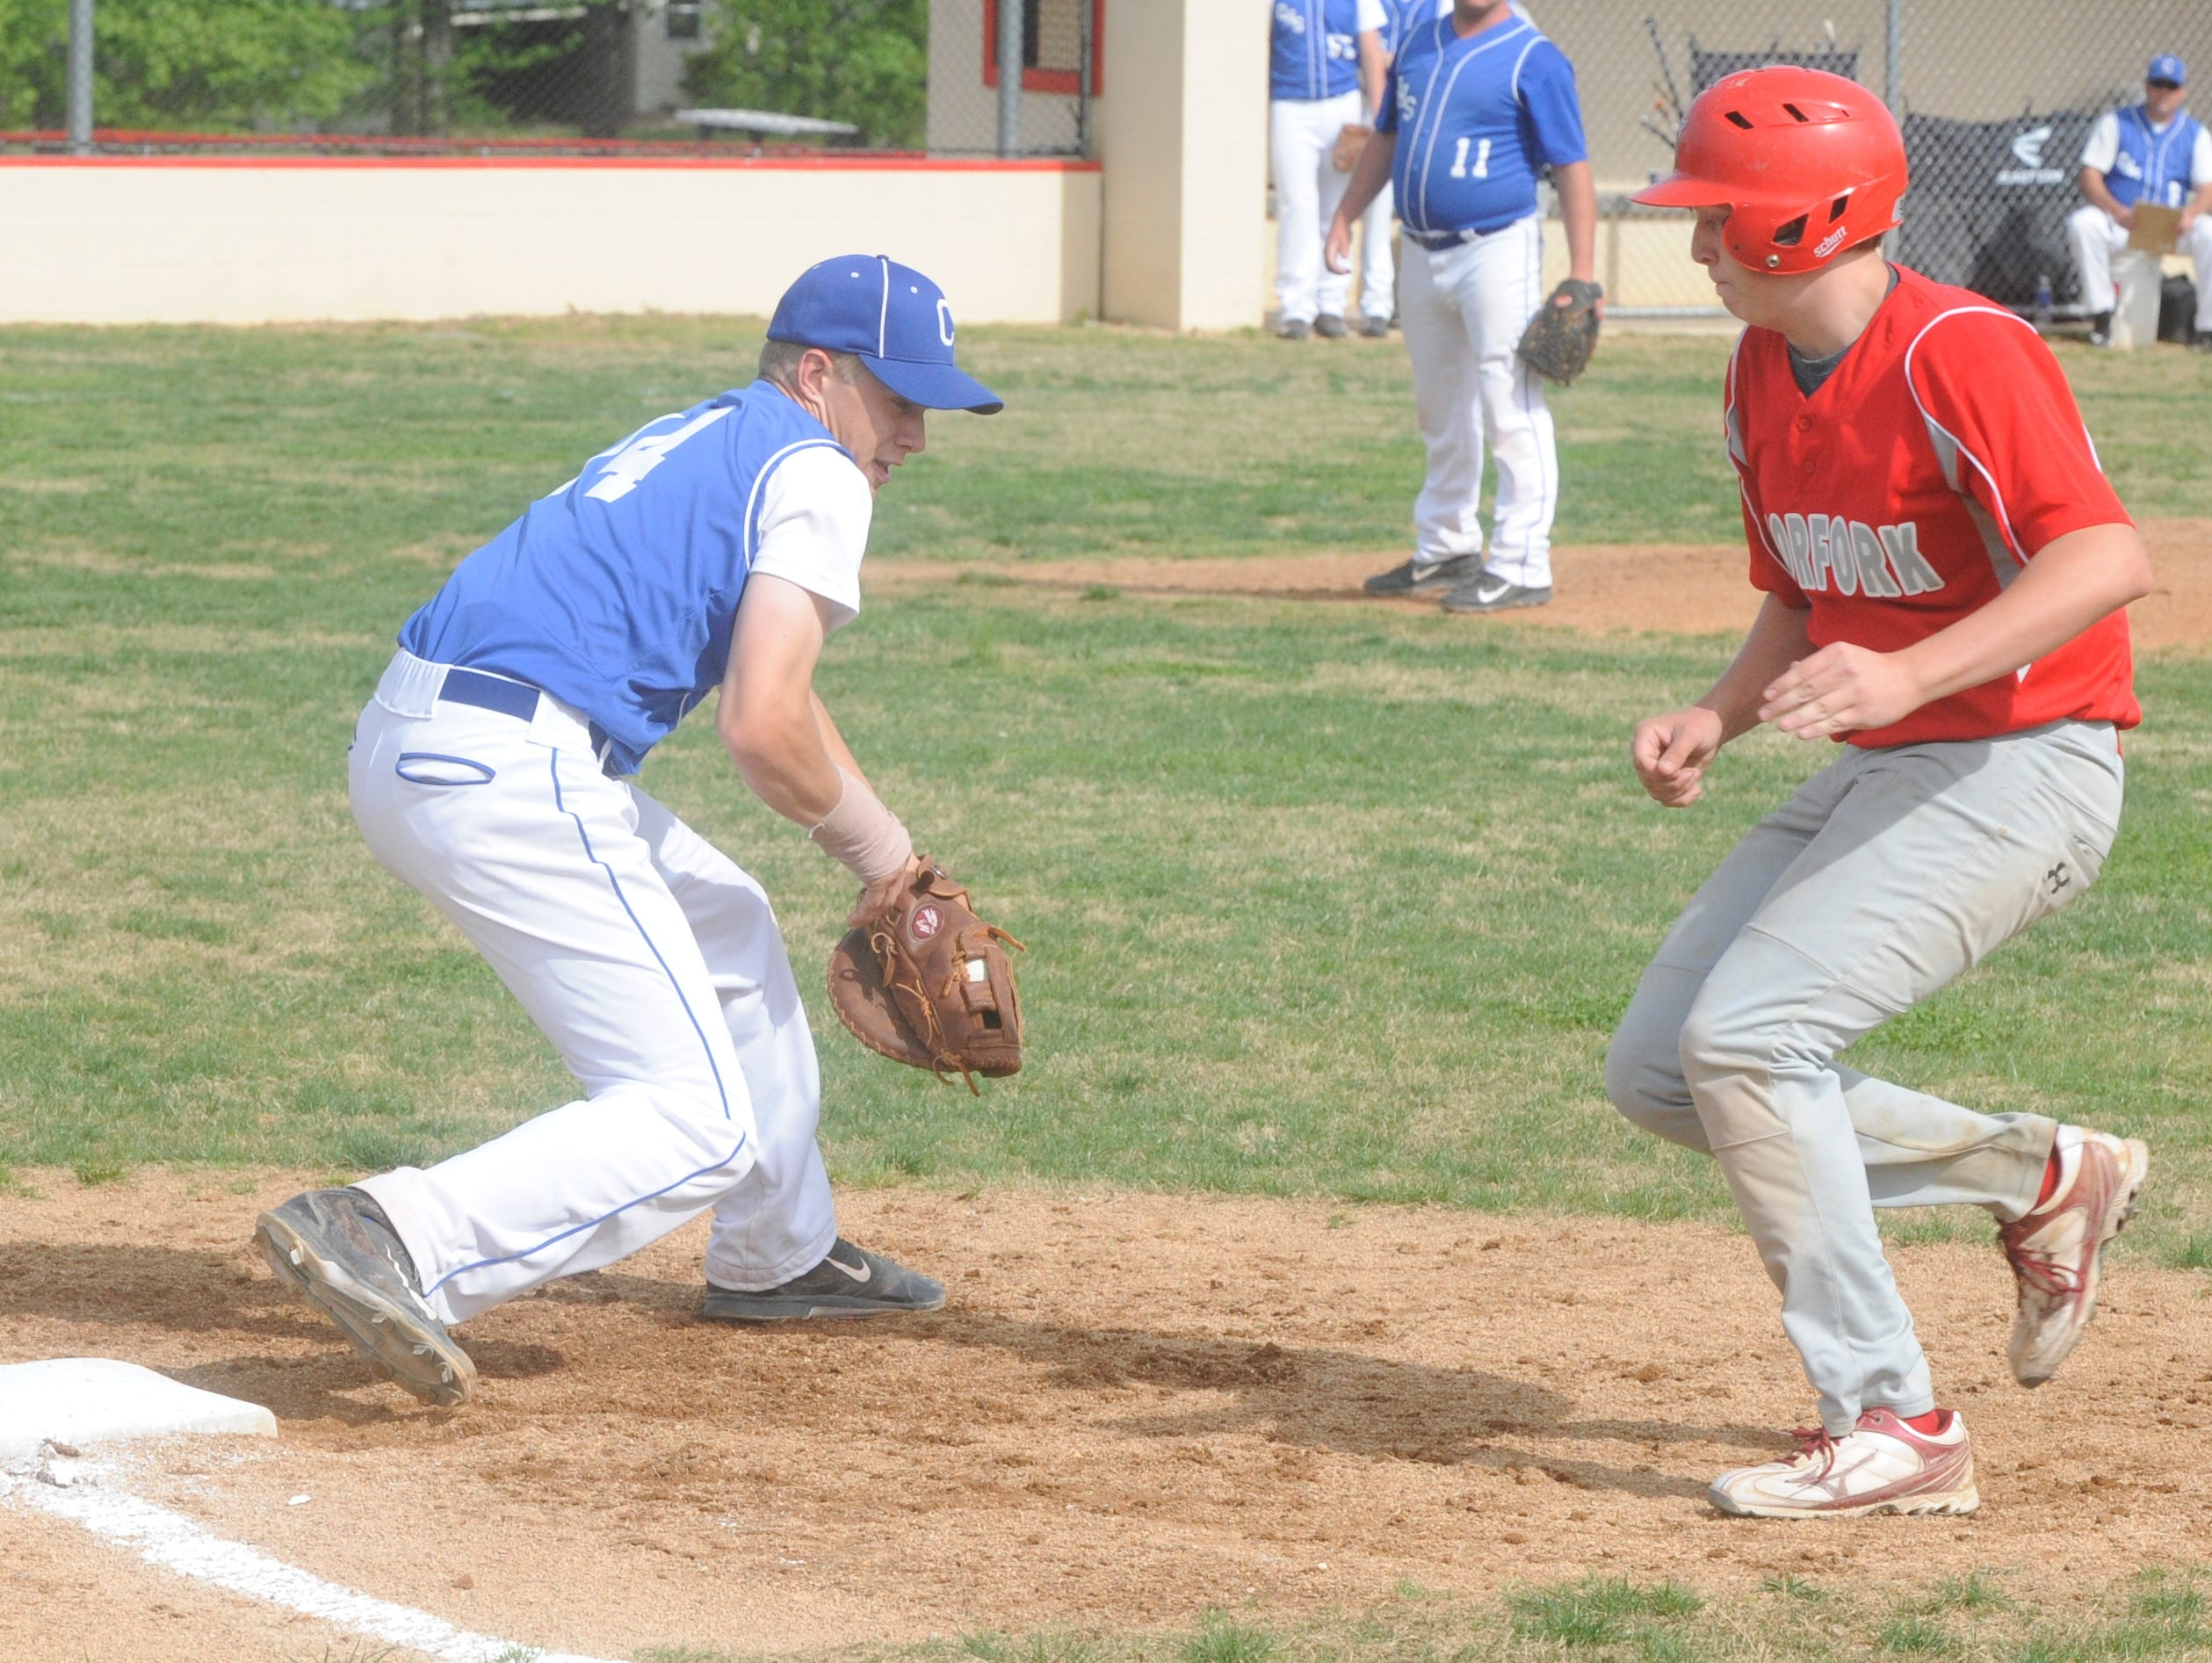 Cotter first baseman Brett Walker, left, prepares to tag Norfork's Brock Belding on a pickoff attempt during the Warriors' 21-3 victory over the Panthers on Monday night at Fireball Reynolds Ballfield.